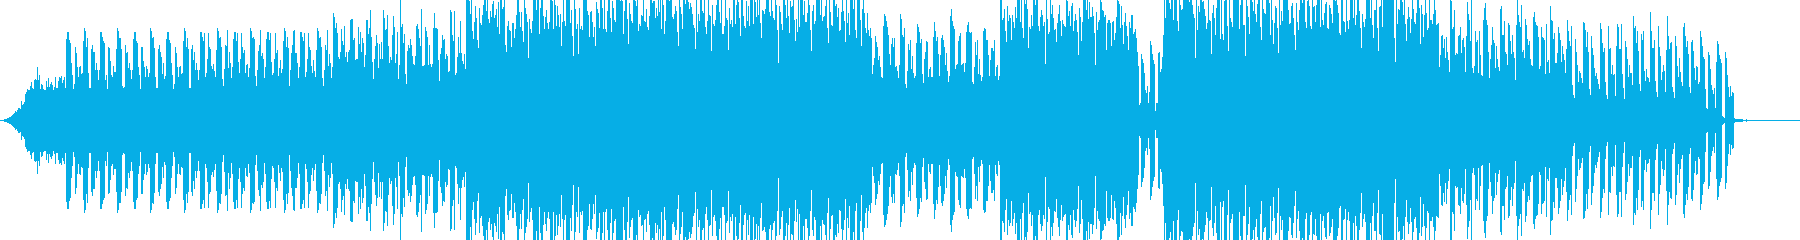 Movie music, majestic, for films-22's reproduced waveform